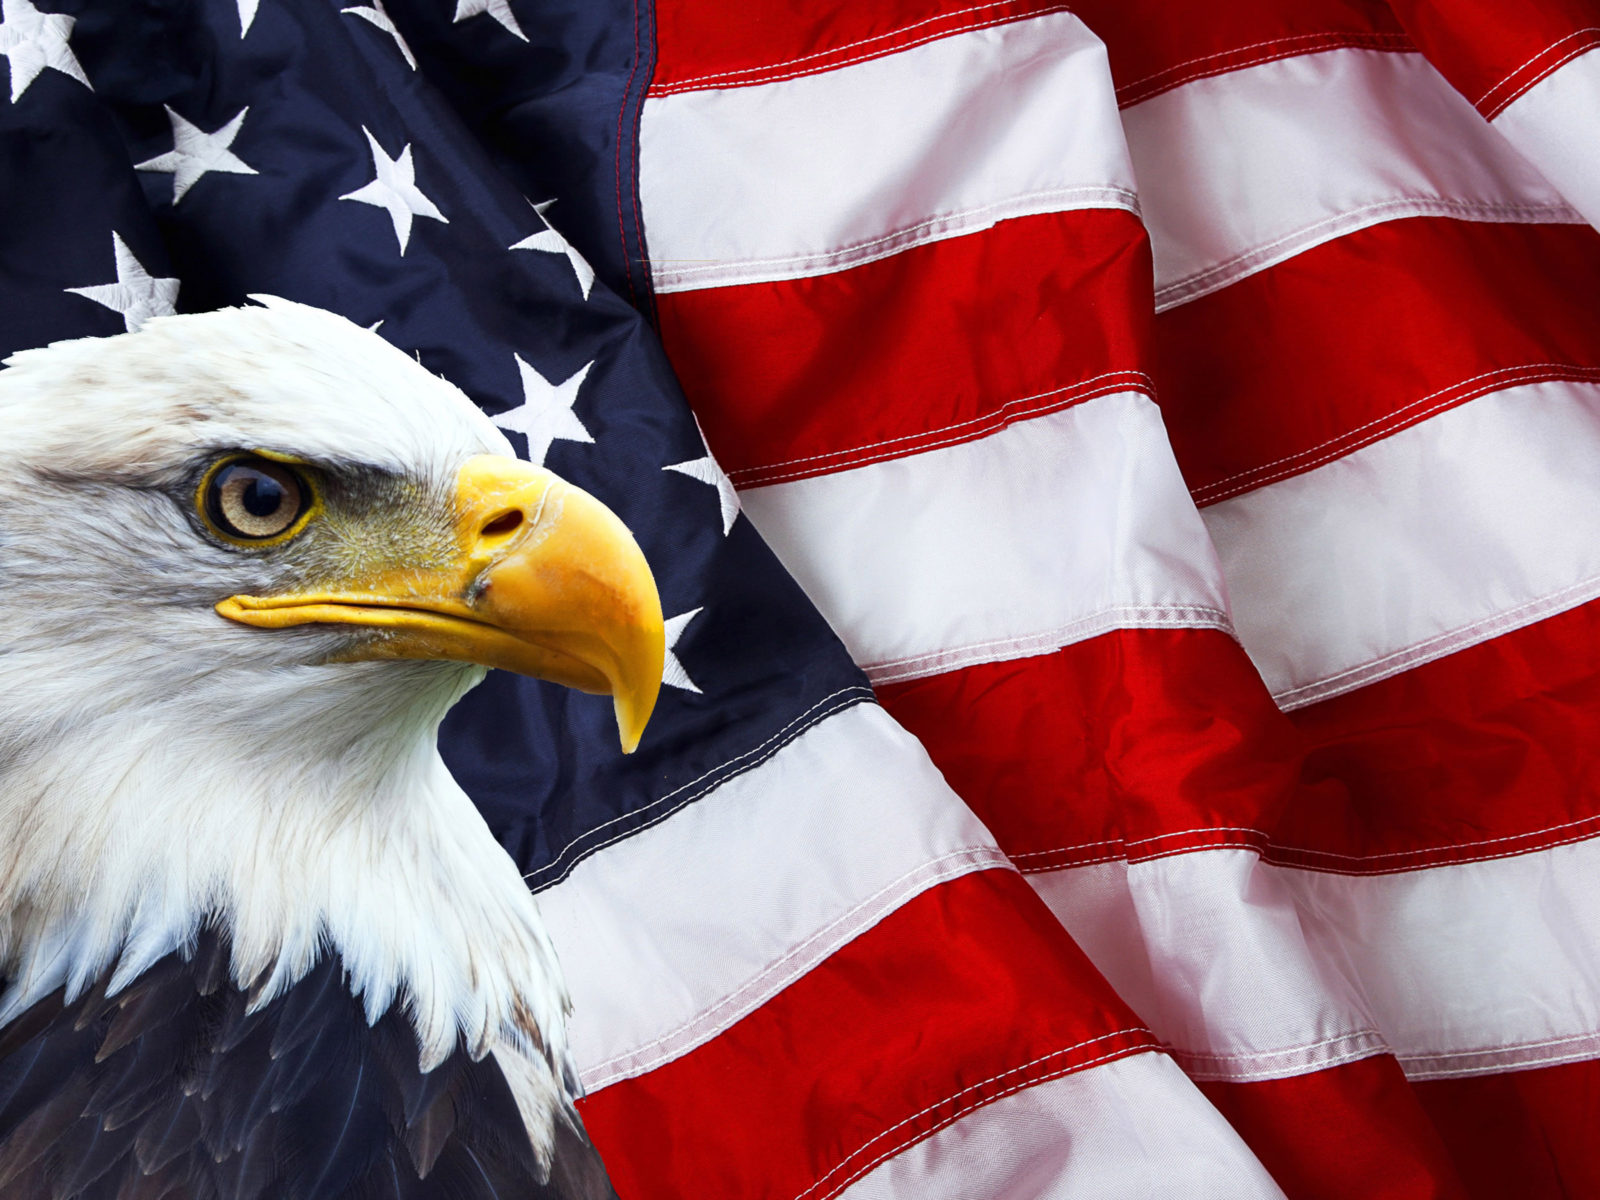 Computer Lock Screen Wallpapers Girls American Flag And Bald Eagle Photo Symbols Of North